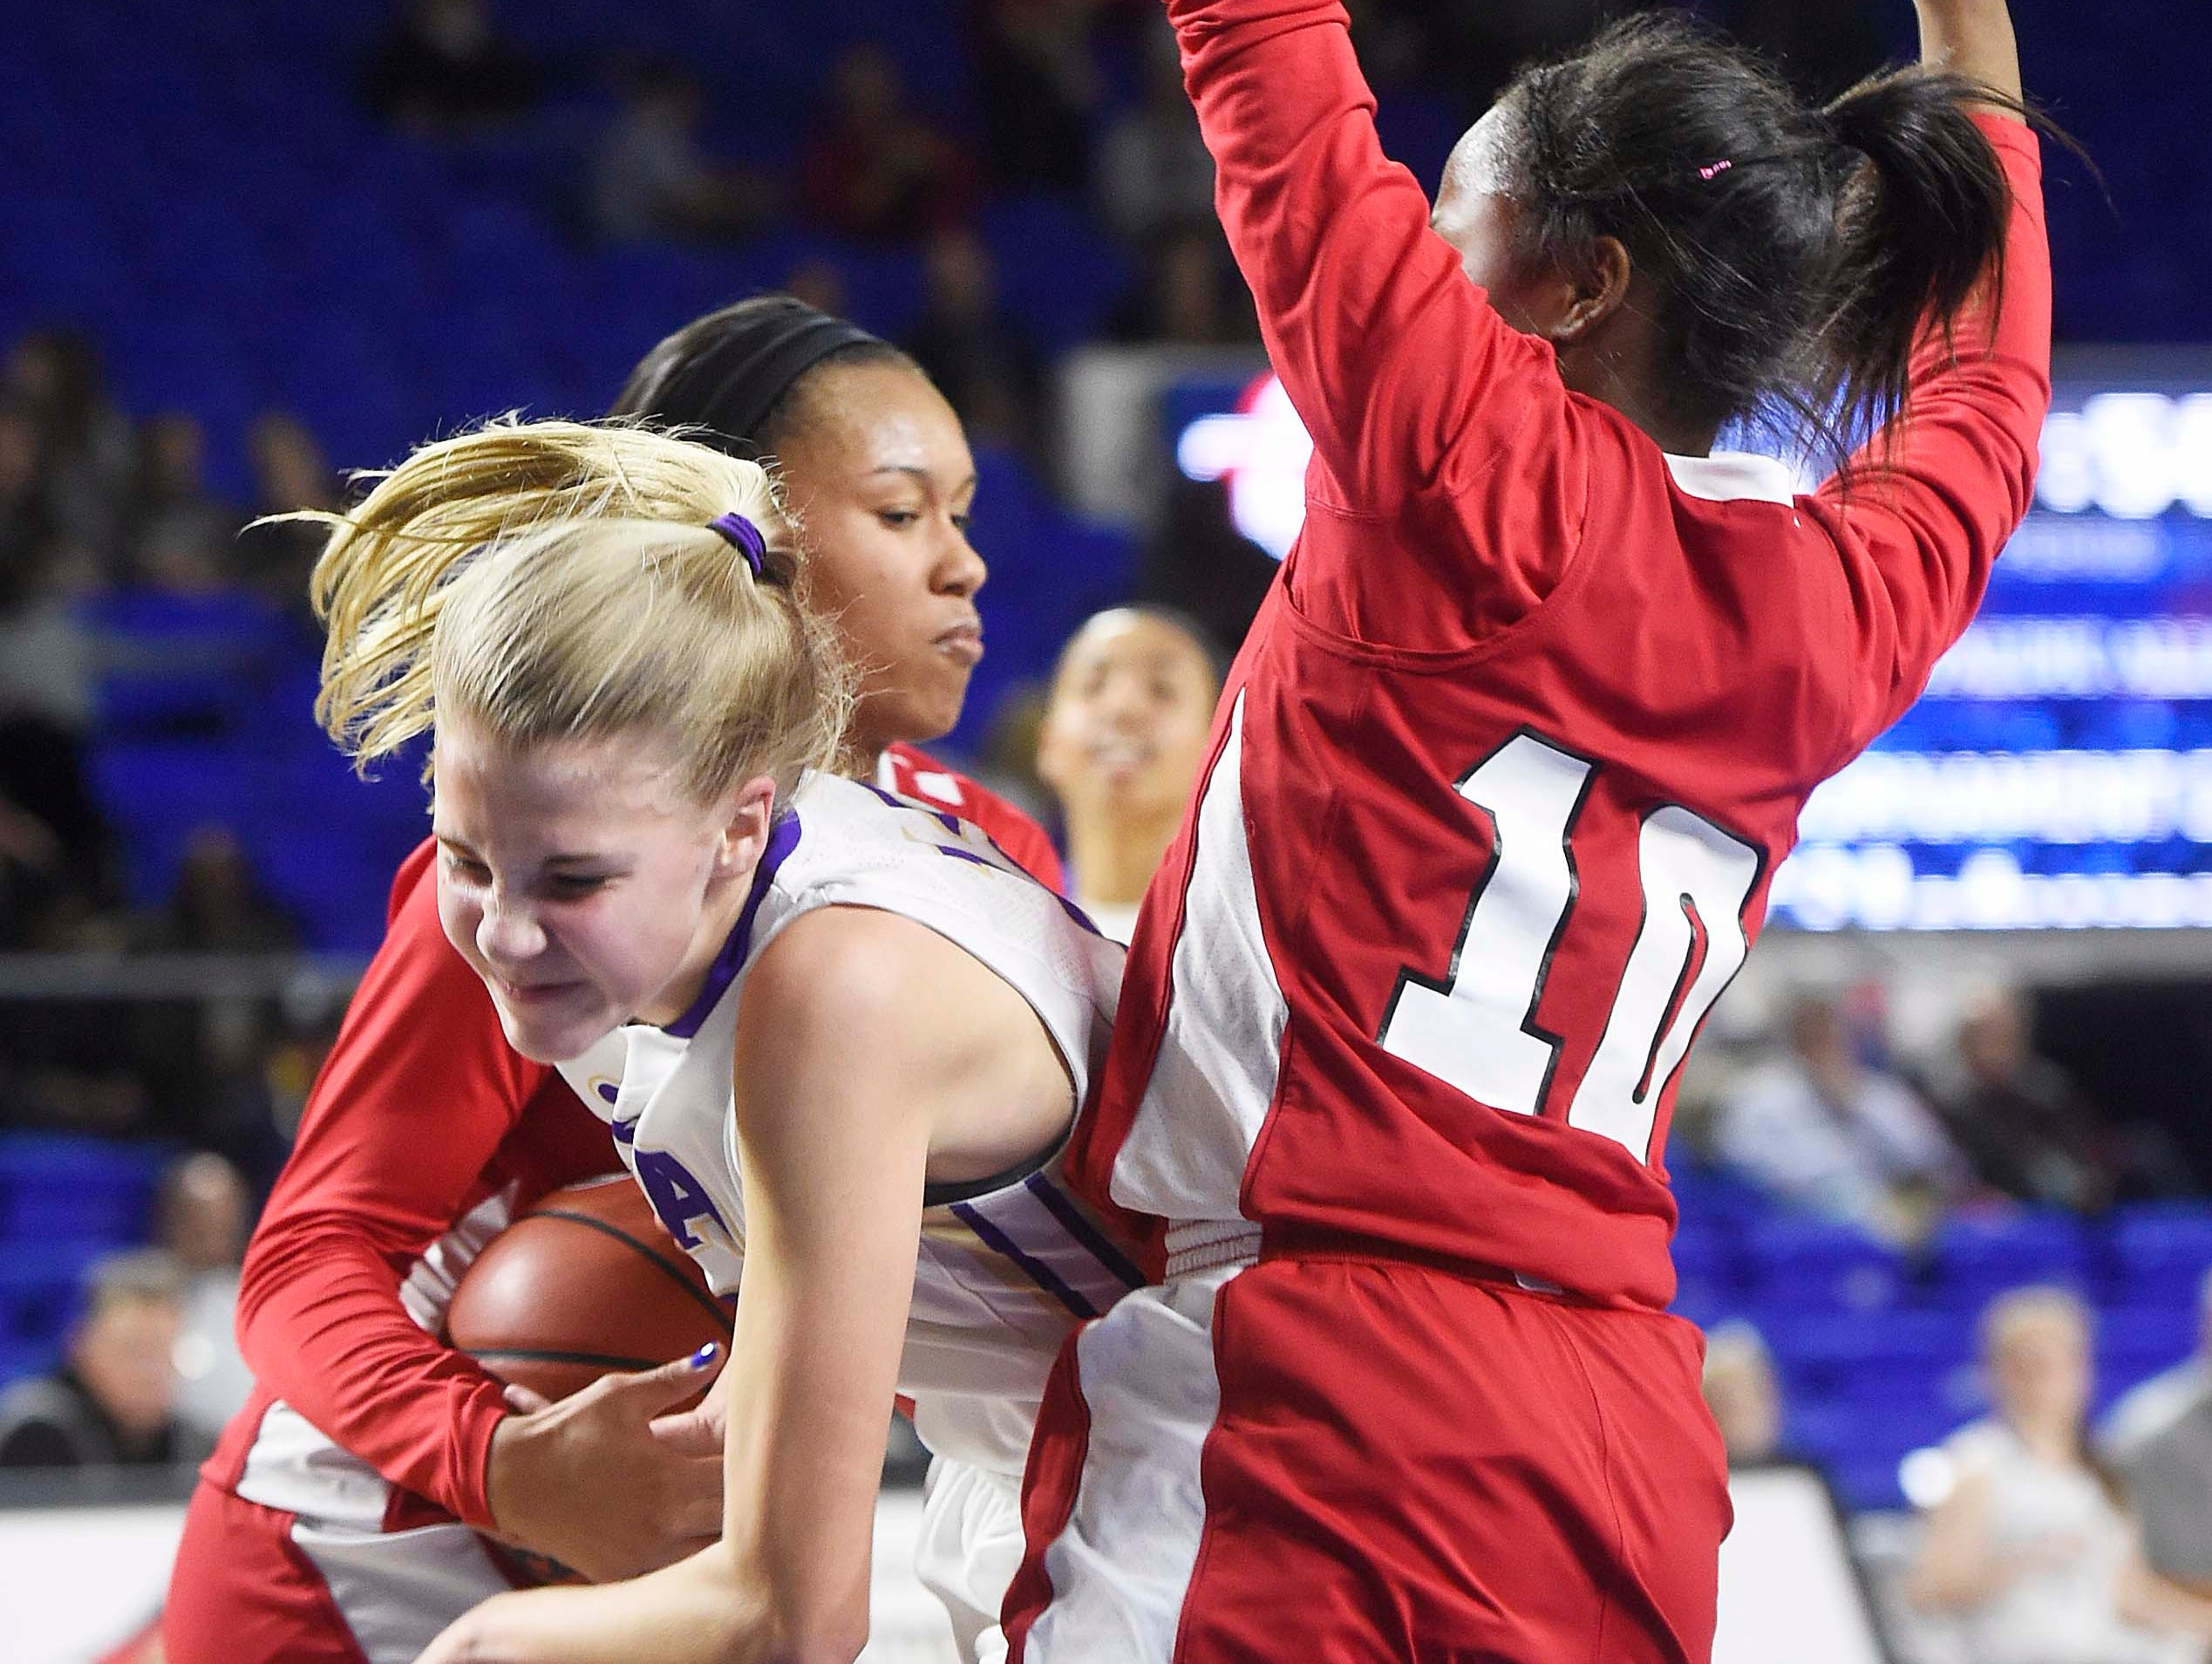 CPA's Carrington Washburn (12) collides with East's Le'Jzae Davidson, right, and Kaia Upton (14) left, as East Nashville leads 25-24 at the half n the Division I Class AA Girl's basketball tournament at the Murphy Center on MTSU's campus March 10, 2016 in Murfreesboro, Tenn.